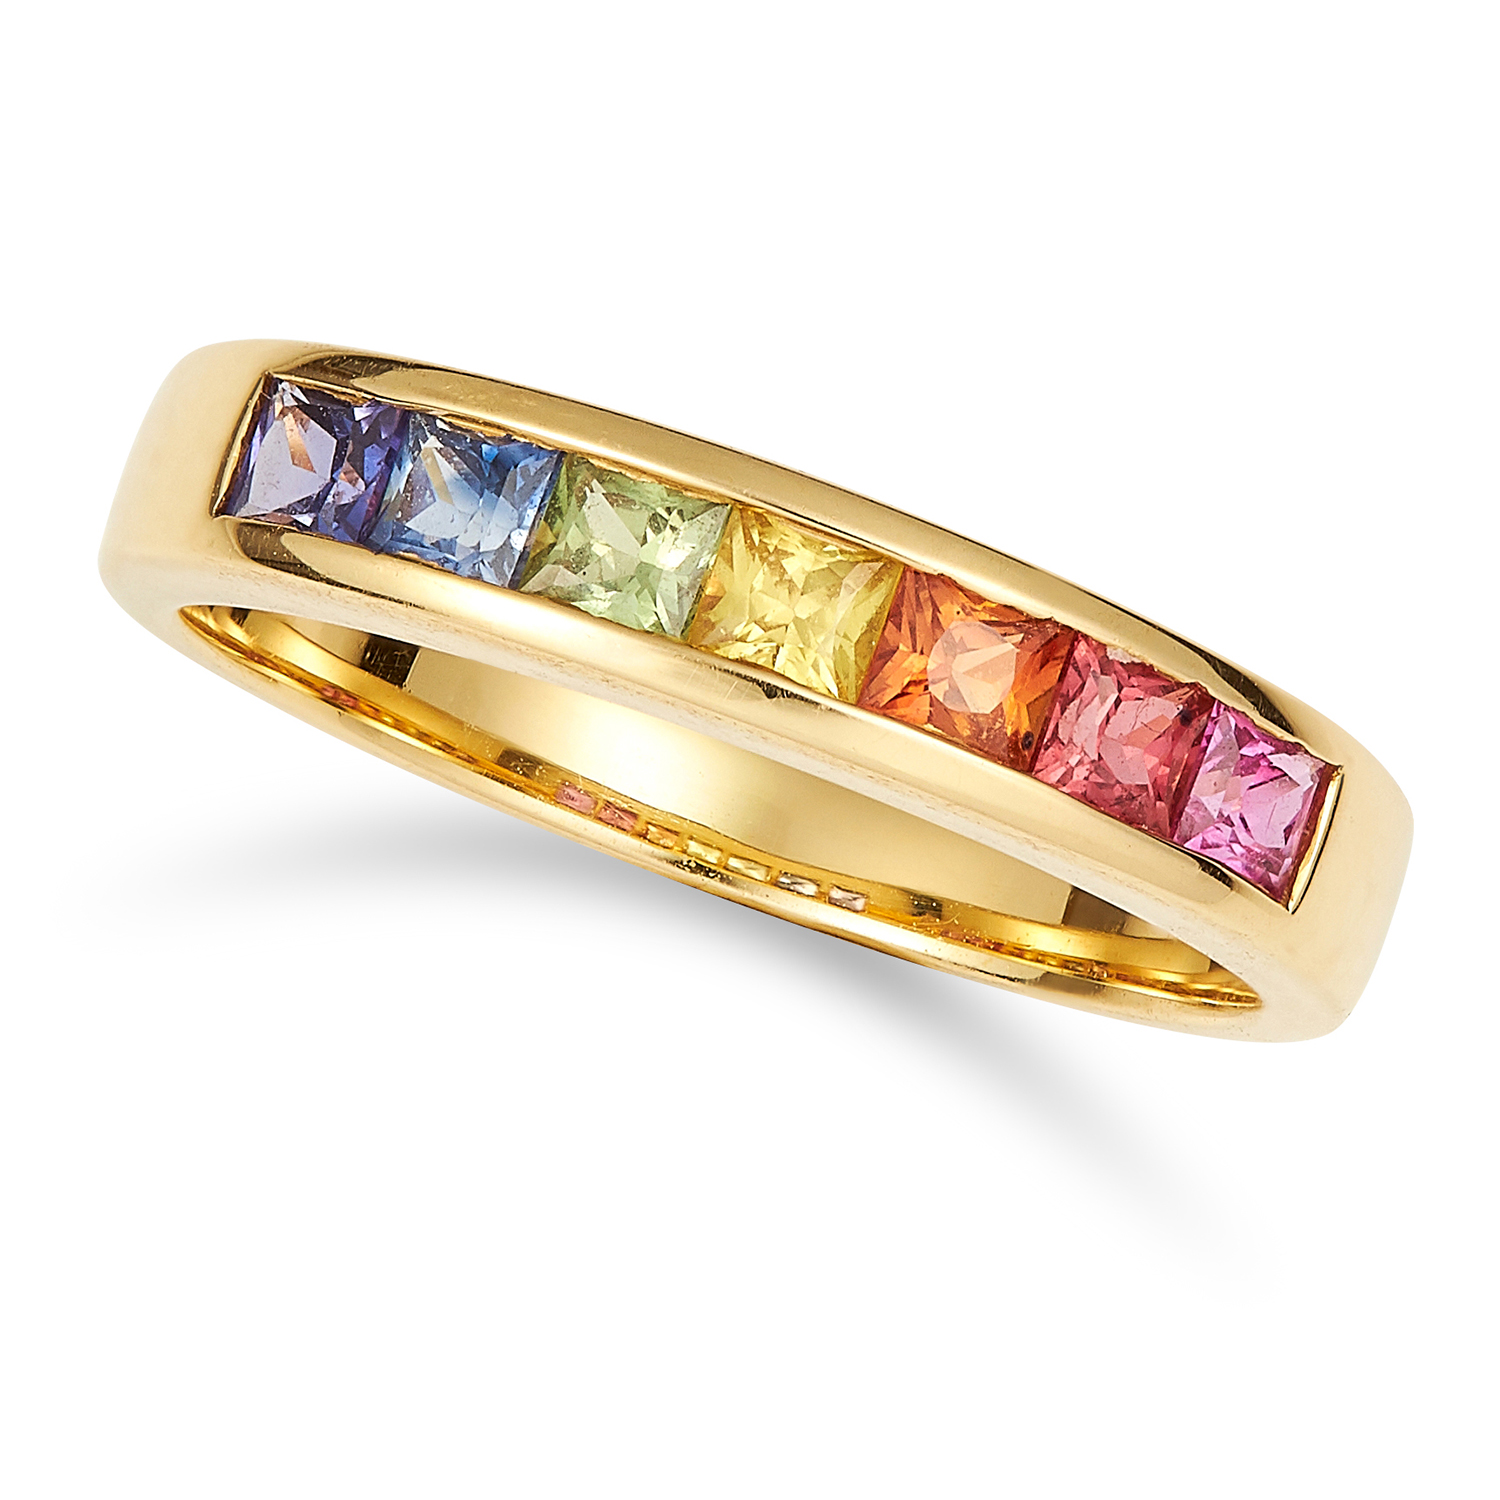 COLOURED SAPPHIRE RING set with square cut multi colour sapphires, size M / 6, 3.9g.